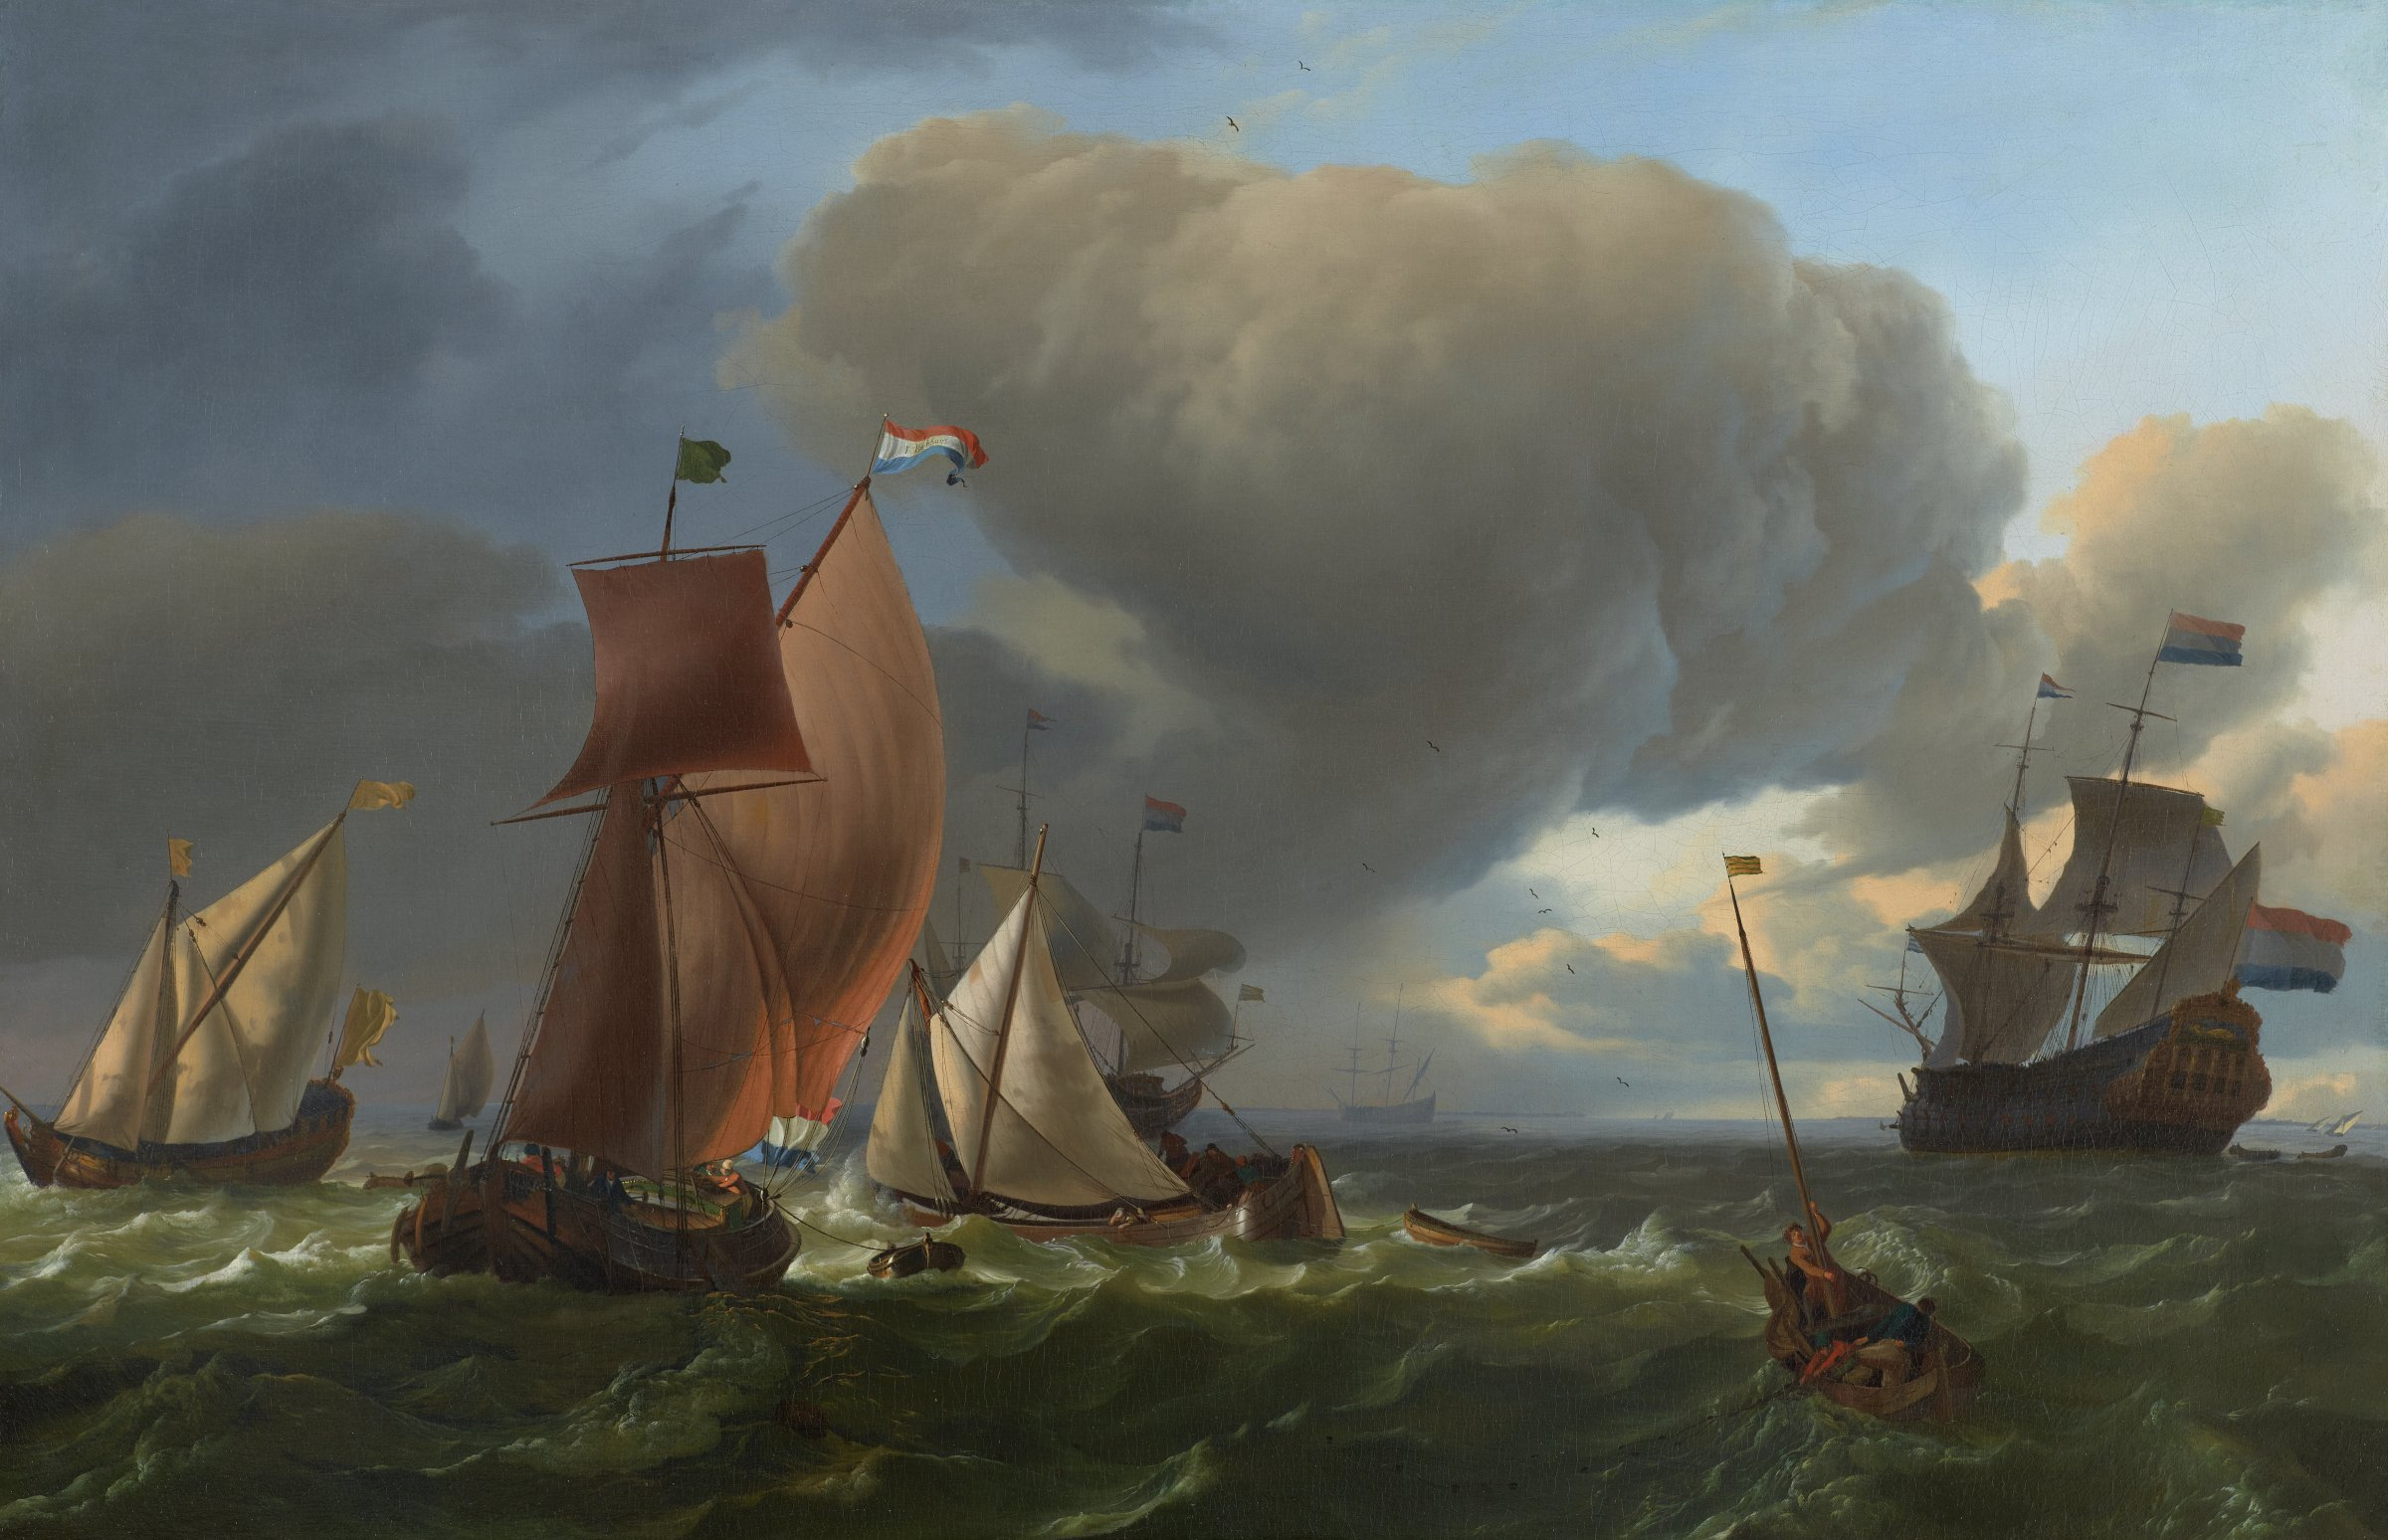 Ludolf Backhuysen was one of the foremost painters of marine subjects in 17th c. Holland. Beautifully preserved, this painting ranks among Backhuysen's most striking paintings of the late 1670s. On the left a number of smaller vessels navigate the rough sea in a steady, strong breeze. On the right fishermen are pulling in their nets and beyond the man-'o-war Bruinvisch sails towards the coastline in the far distance. The ominous sky in the foreground with dark, billowing clouds moving in from the left clears in the distance. Using a strong side light to illuminate the ships and the water in the foreground, Backhuysen creates a dramatic composition that emphasizes the changing weather conditions.